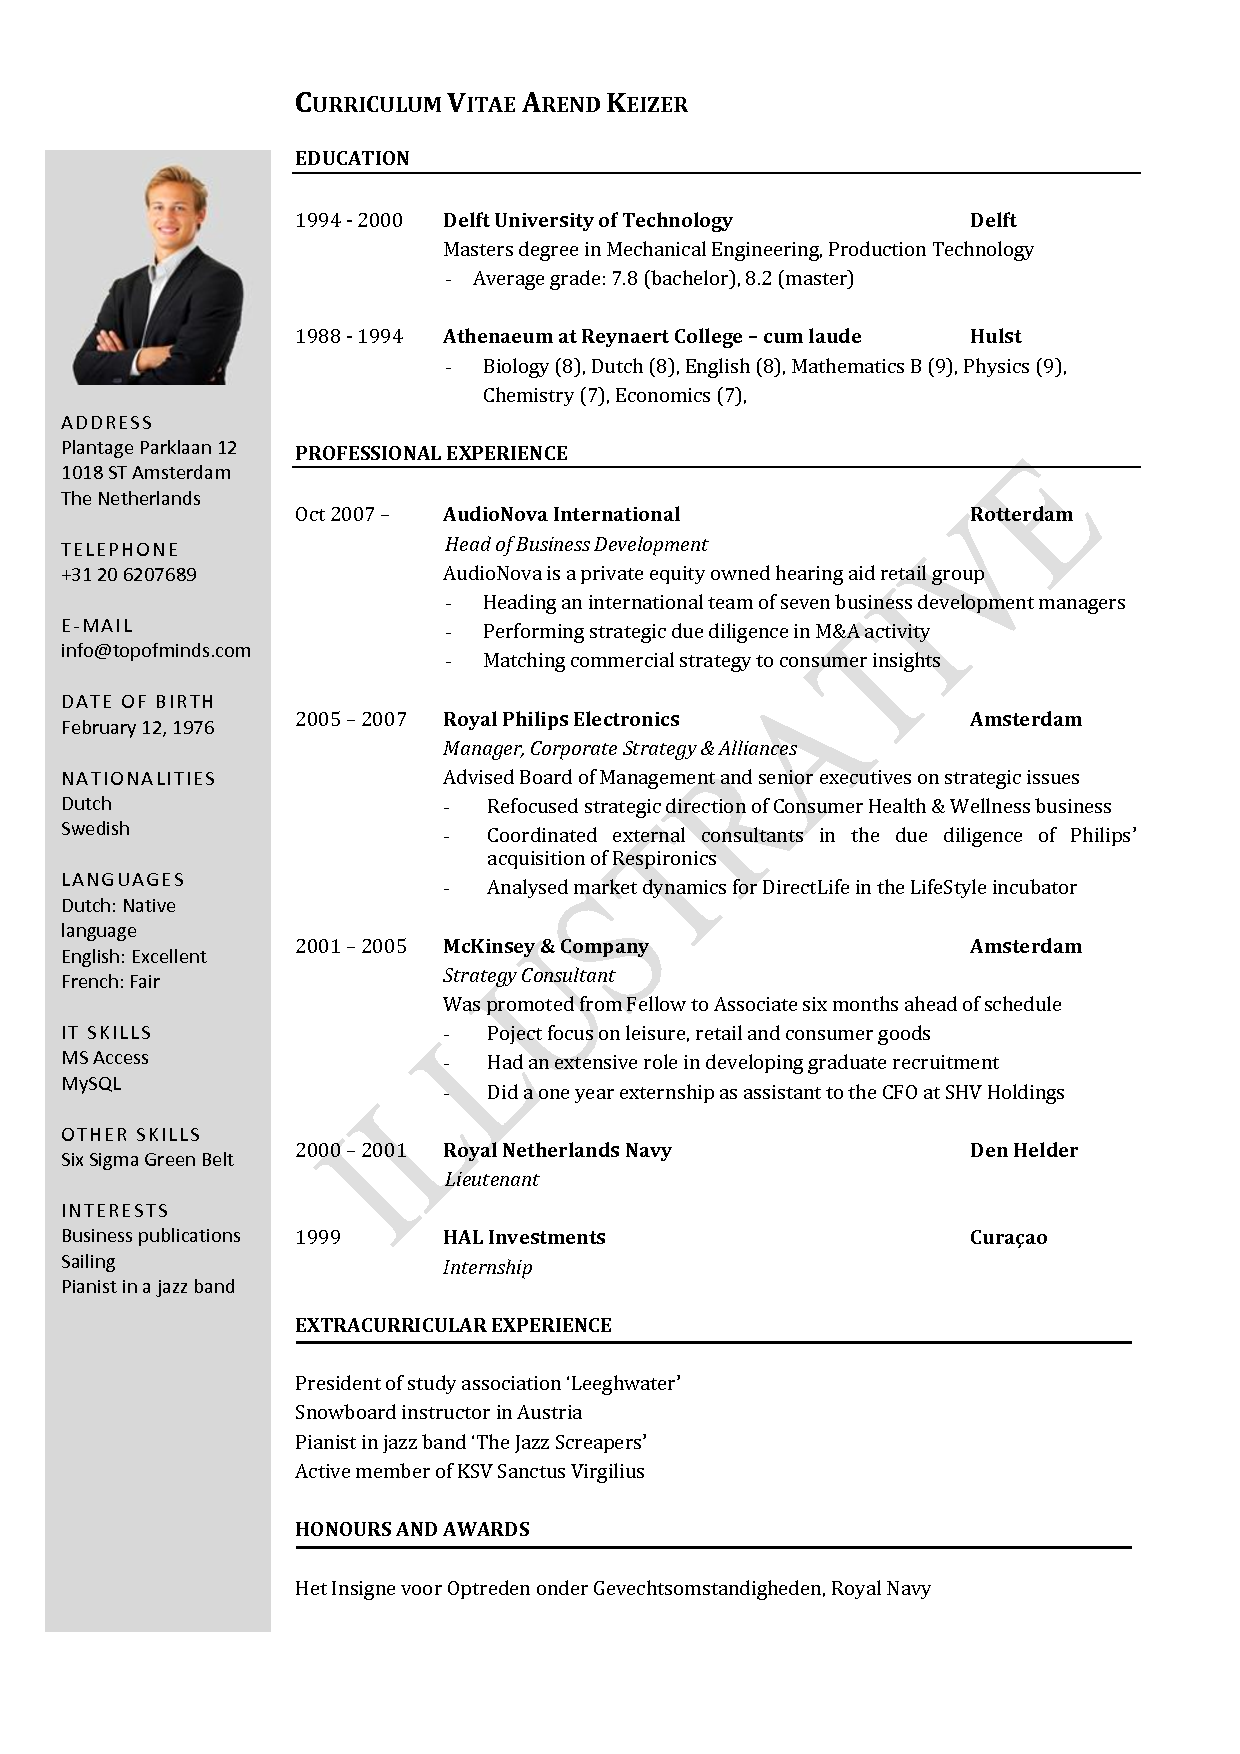 a formal interview of devin blank a computing professional Sample letters formats for business and employment correspondence, how to format a professional letter, and tips for writing easy-to-read documents.